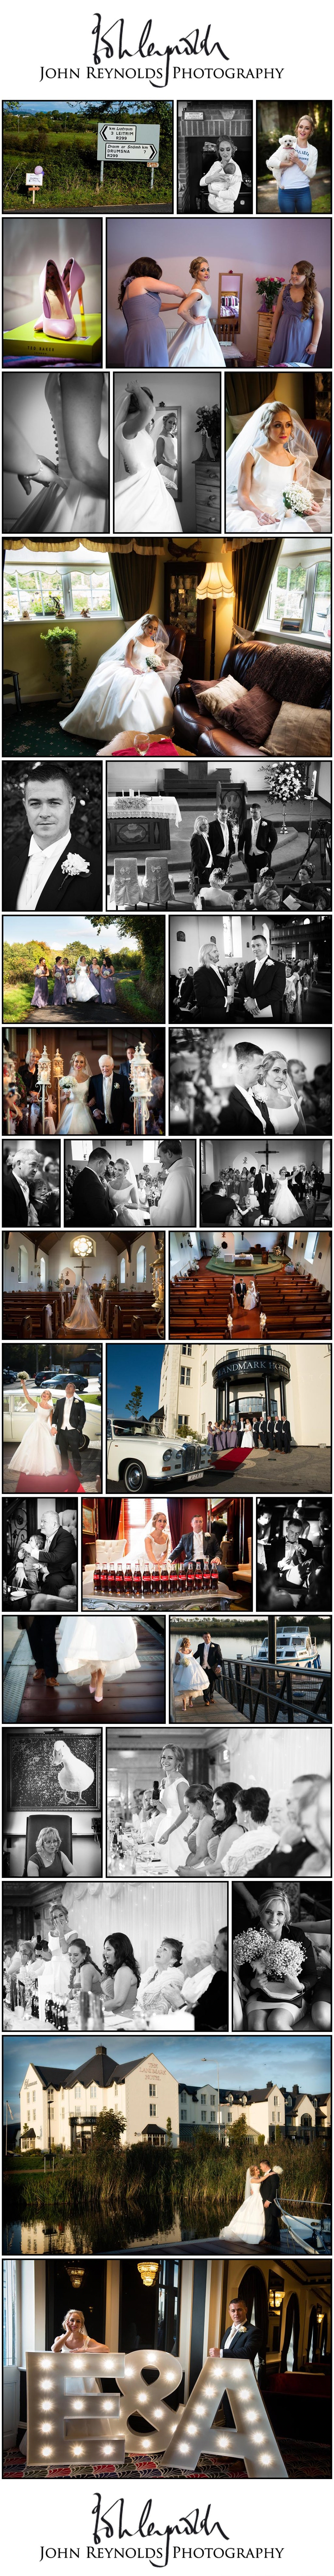 Blog Collage-Edel & Aidan